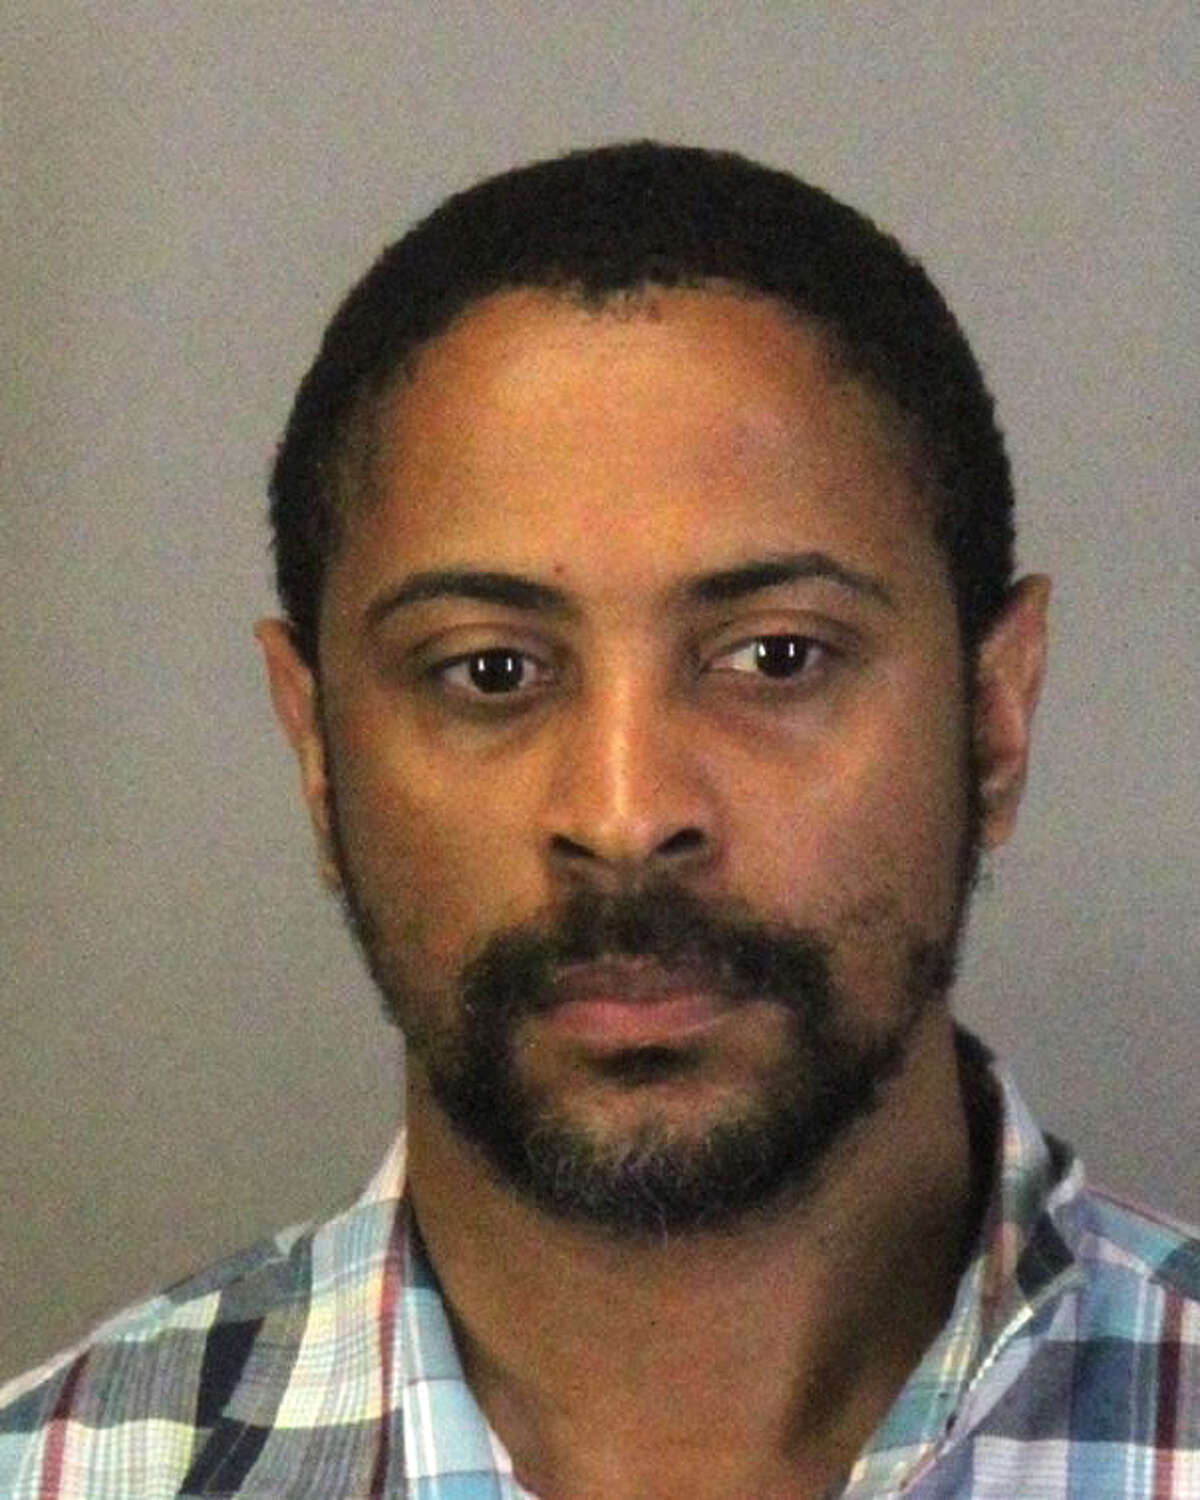 Isaiah Joel Peoples was arrested by Sunnyvale police on suspicion of driving into a group of pedestrians on April 23, 2019.